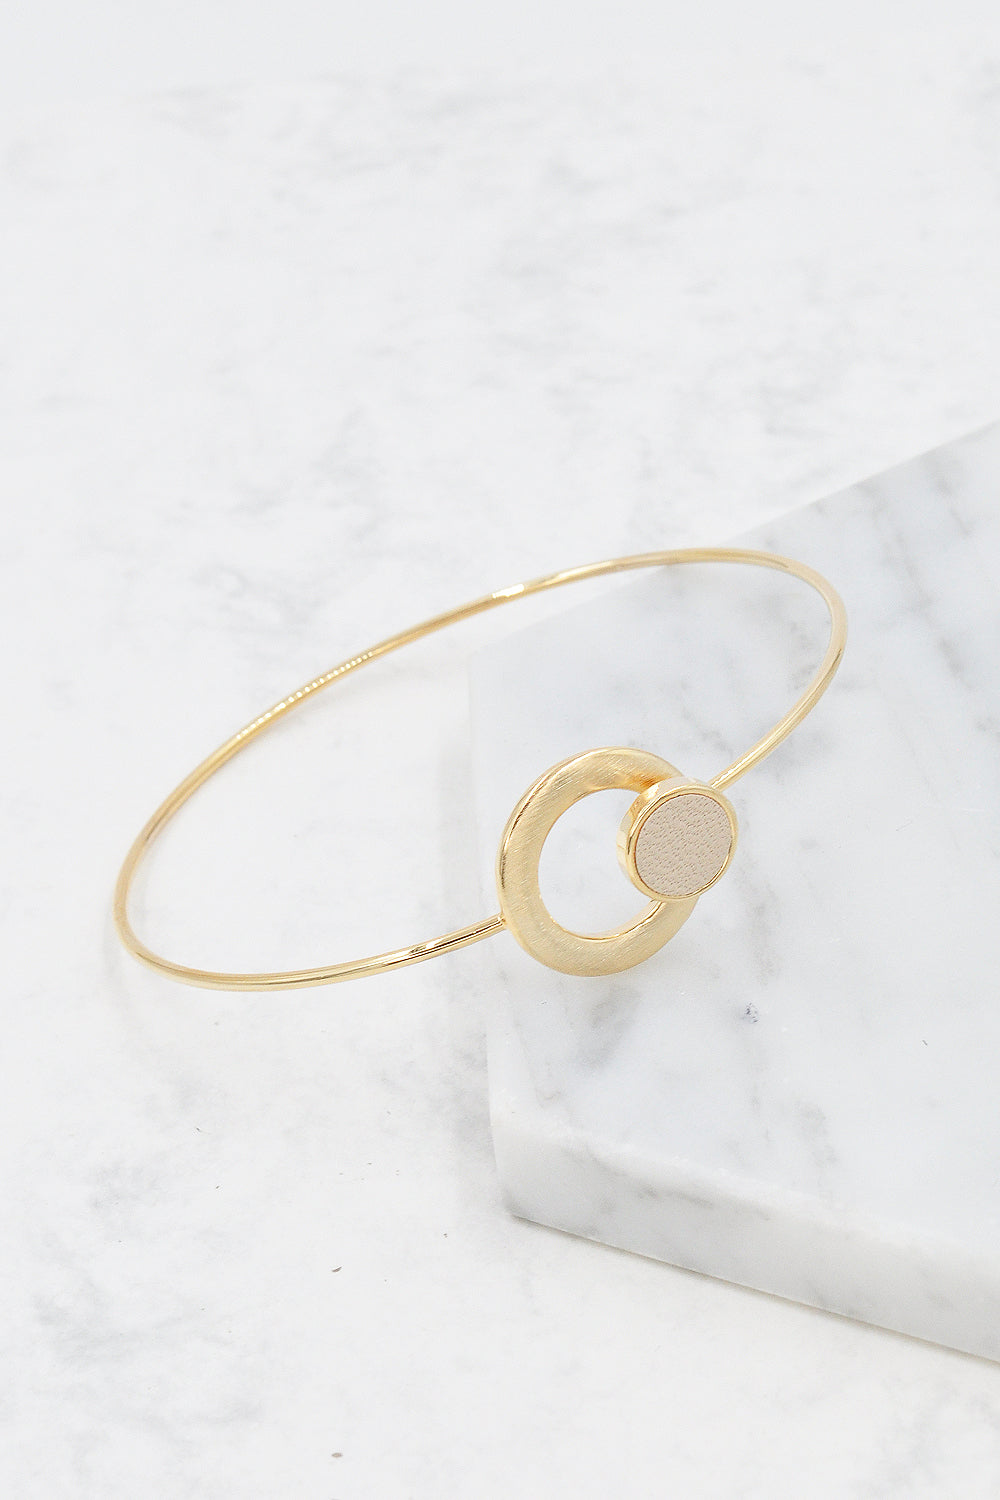 Mica Bangle in Beige